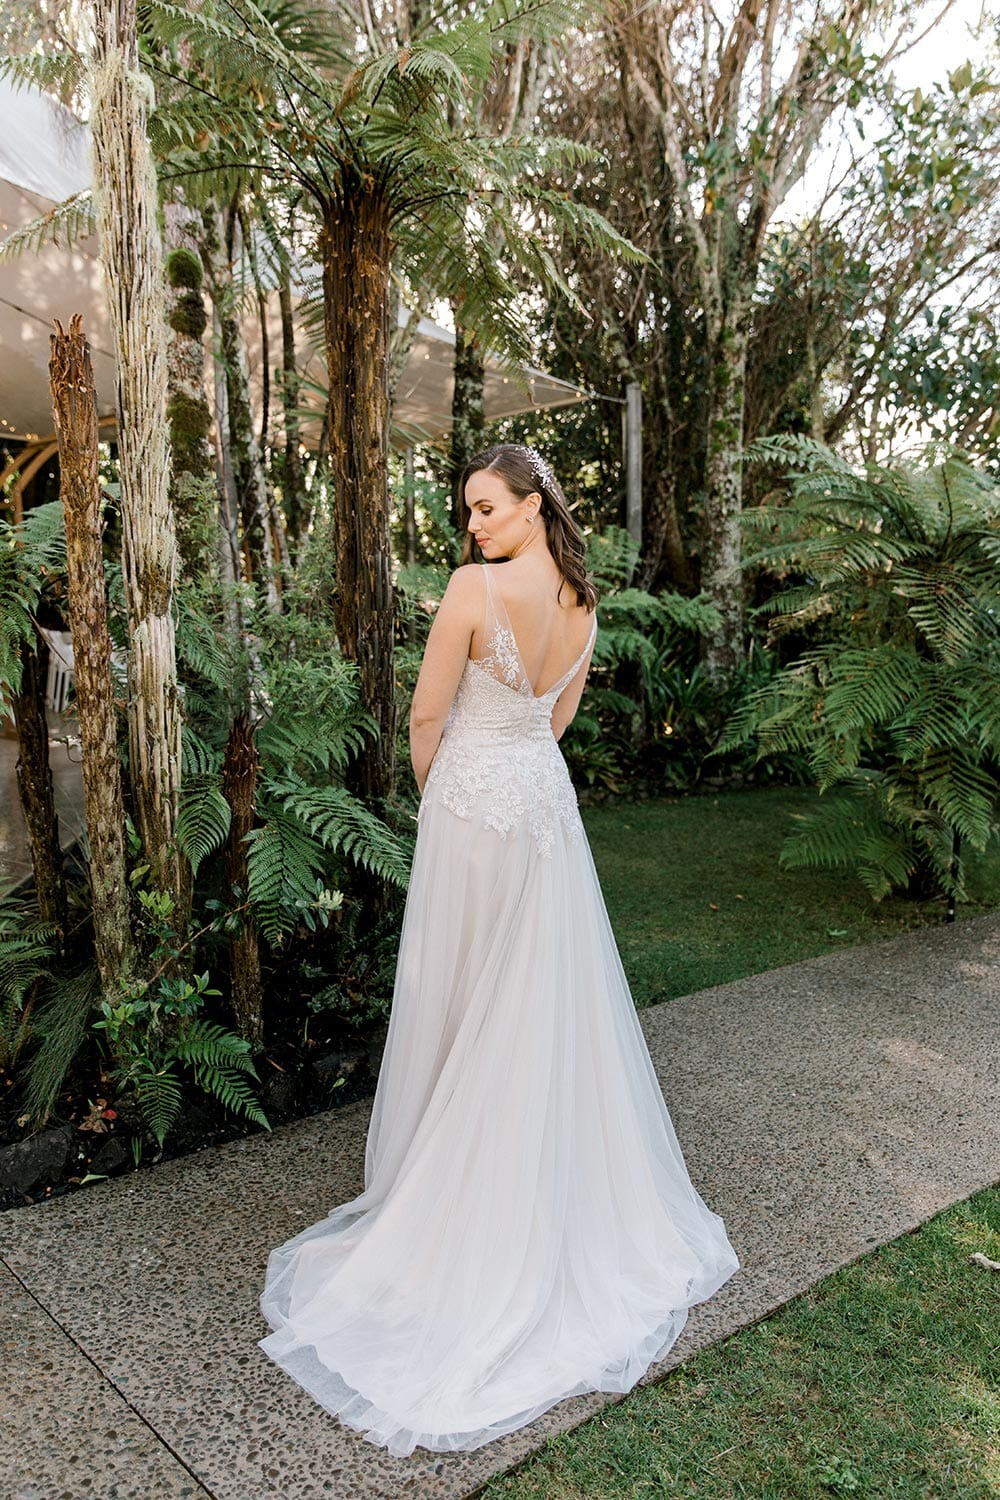 Hazel Wedding Dress from Vinka Design. Wedding dress with highly-sculptured bodice down to the hipline, at which point it gently flares into a beautiful and dreamy tulle skirt and train. Beautiful and delicate embroidery. Model turning away full length dress detail.